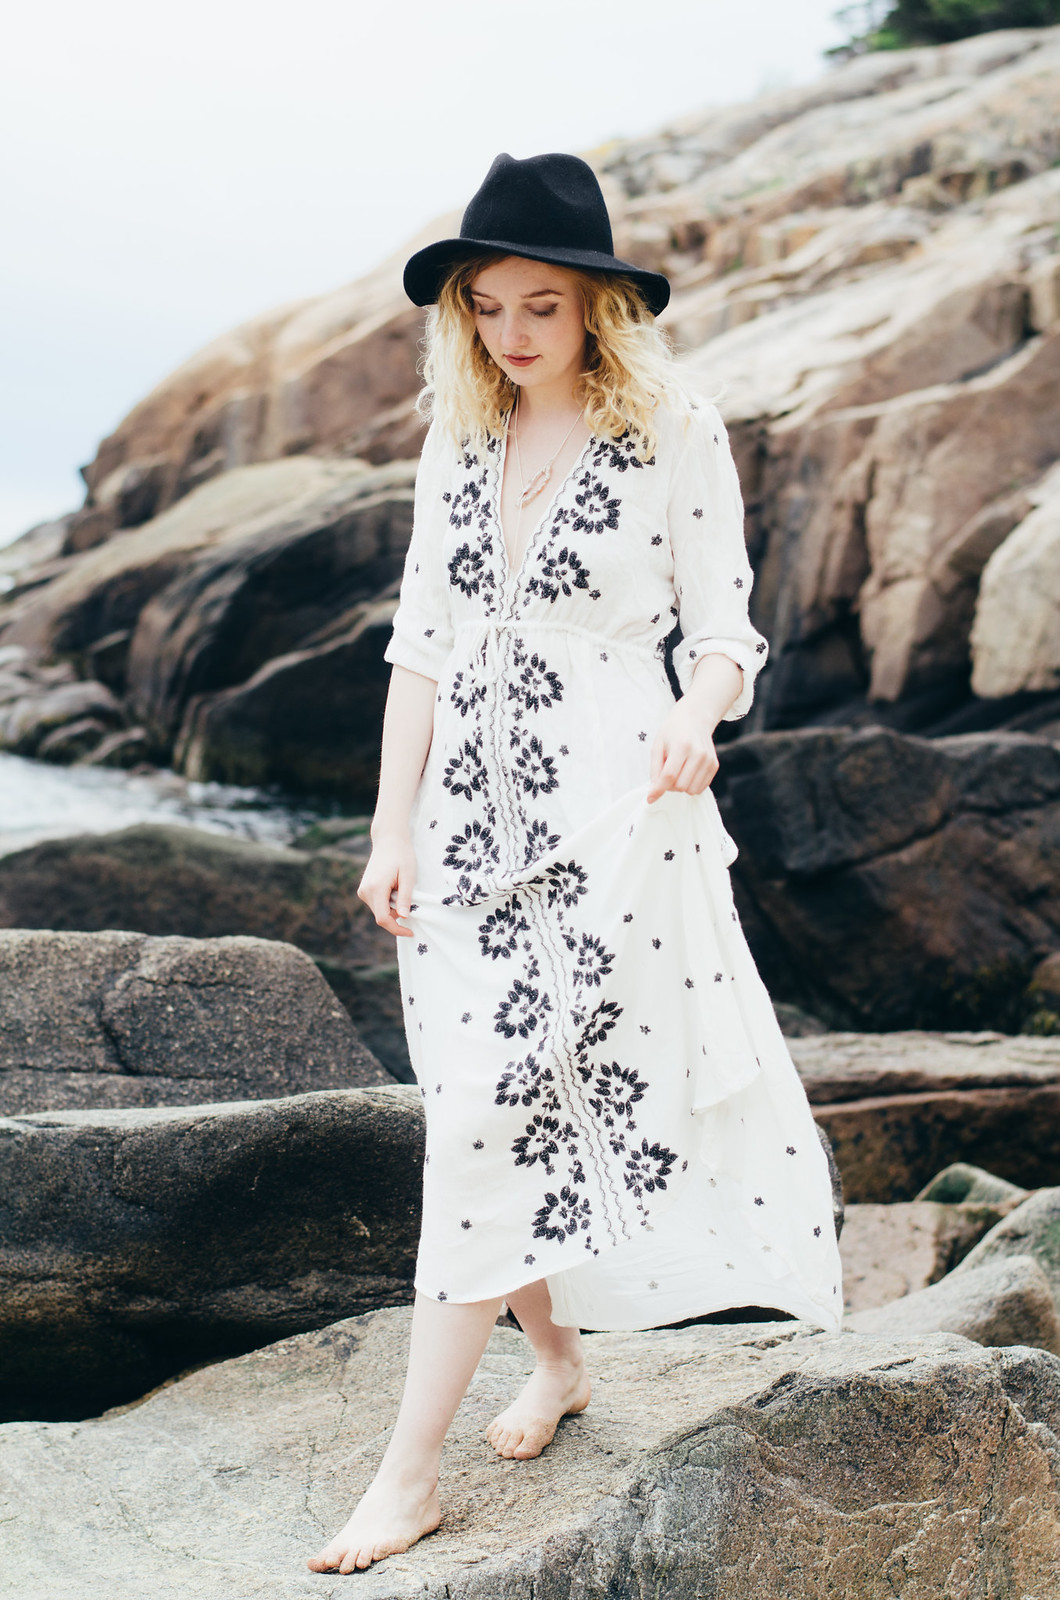 Free People Dress in Acadia Maine shot by Andrew Dion on juliettelaura.blogspot.com